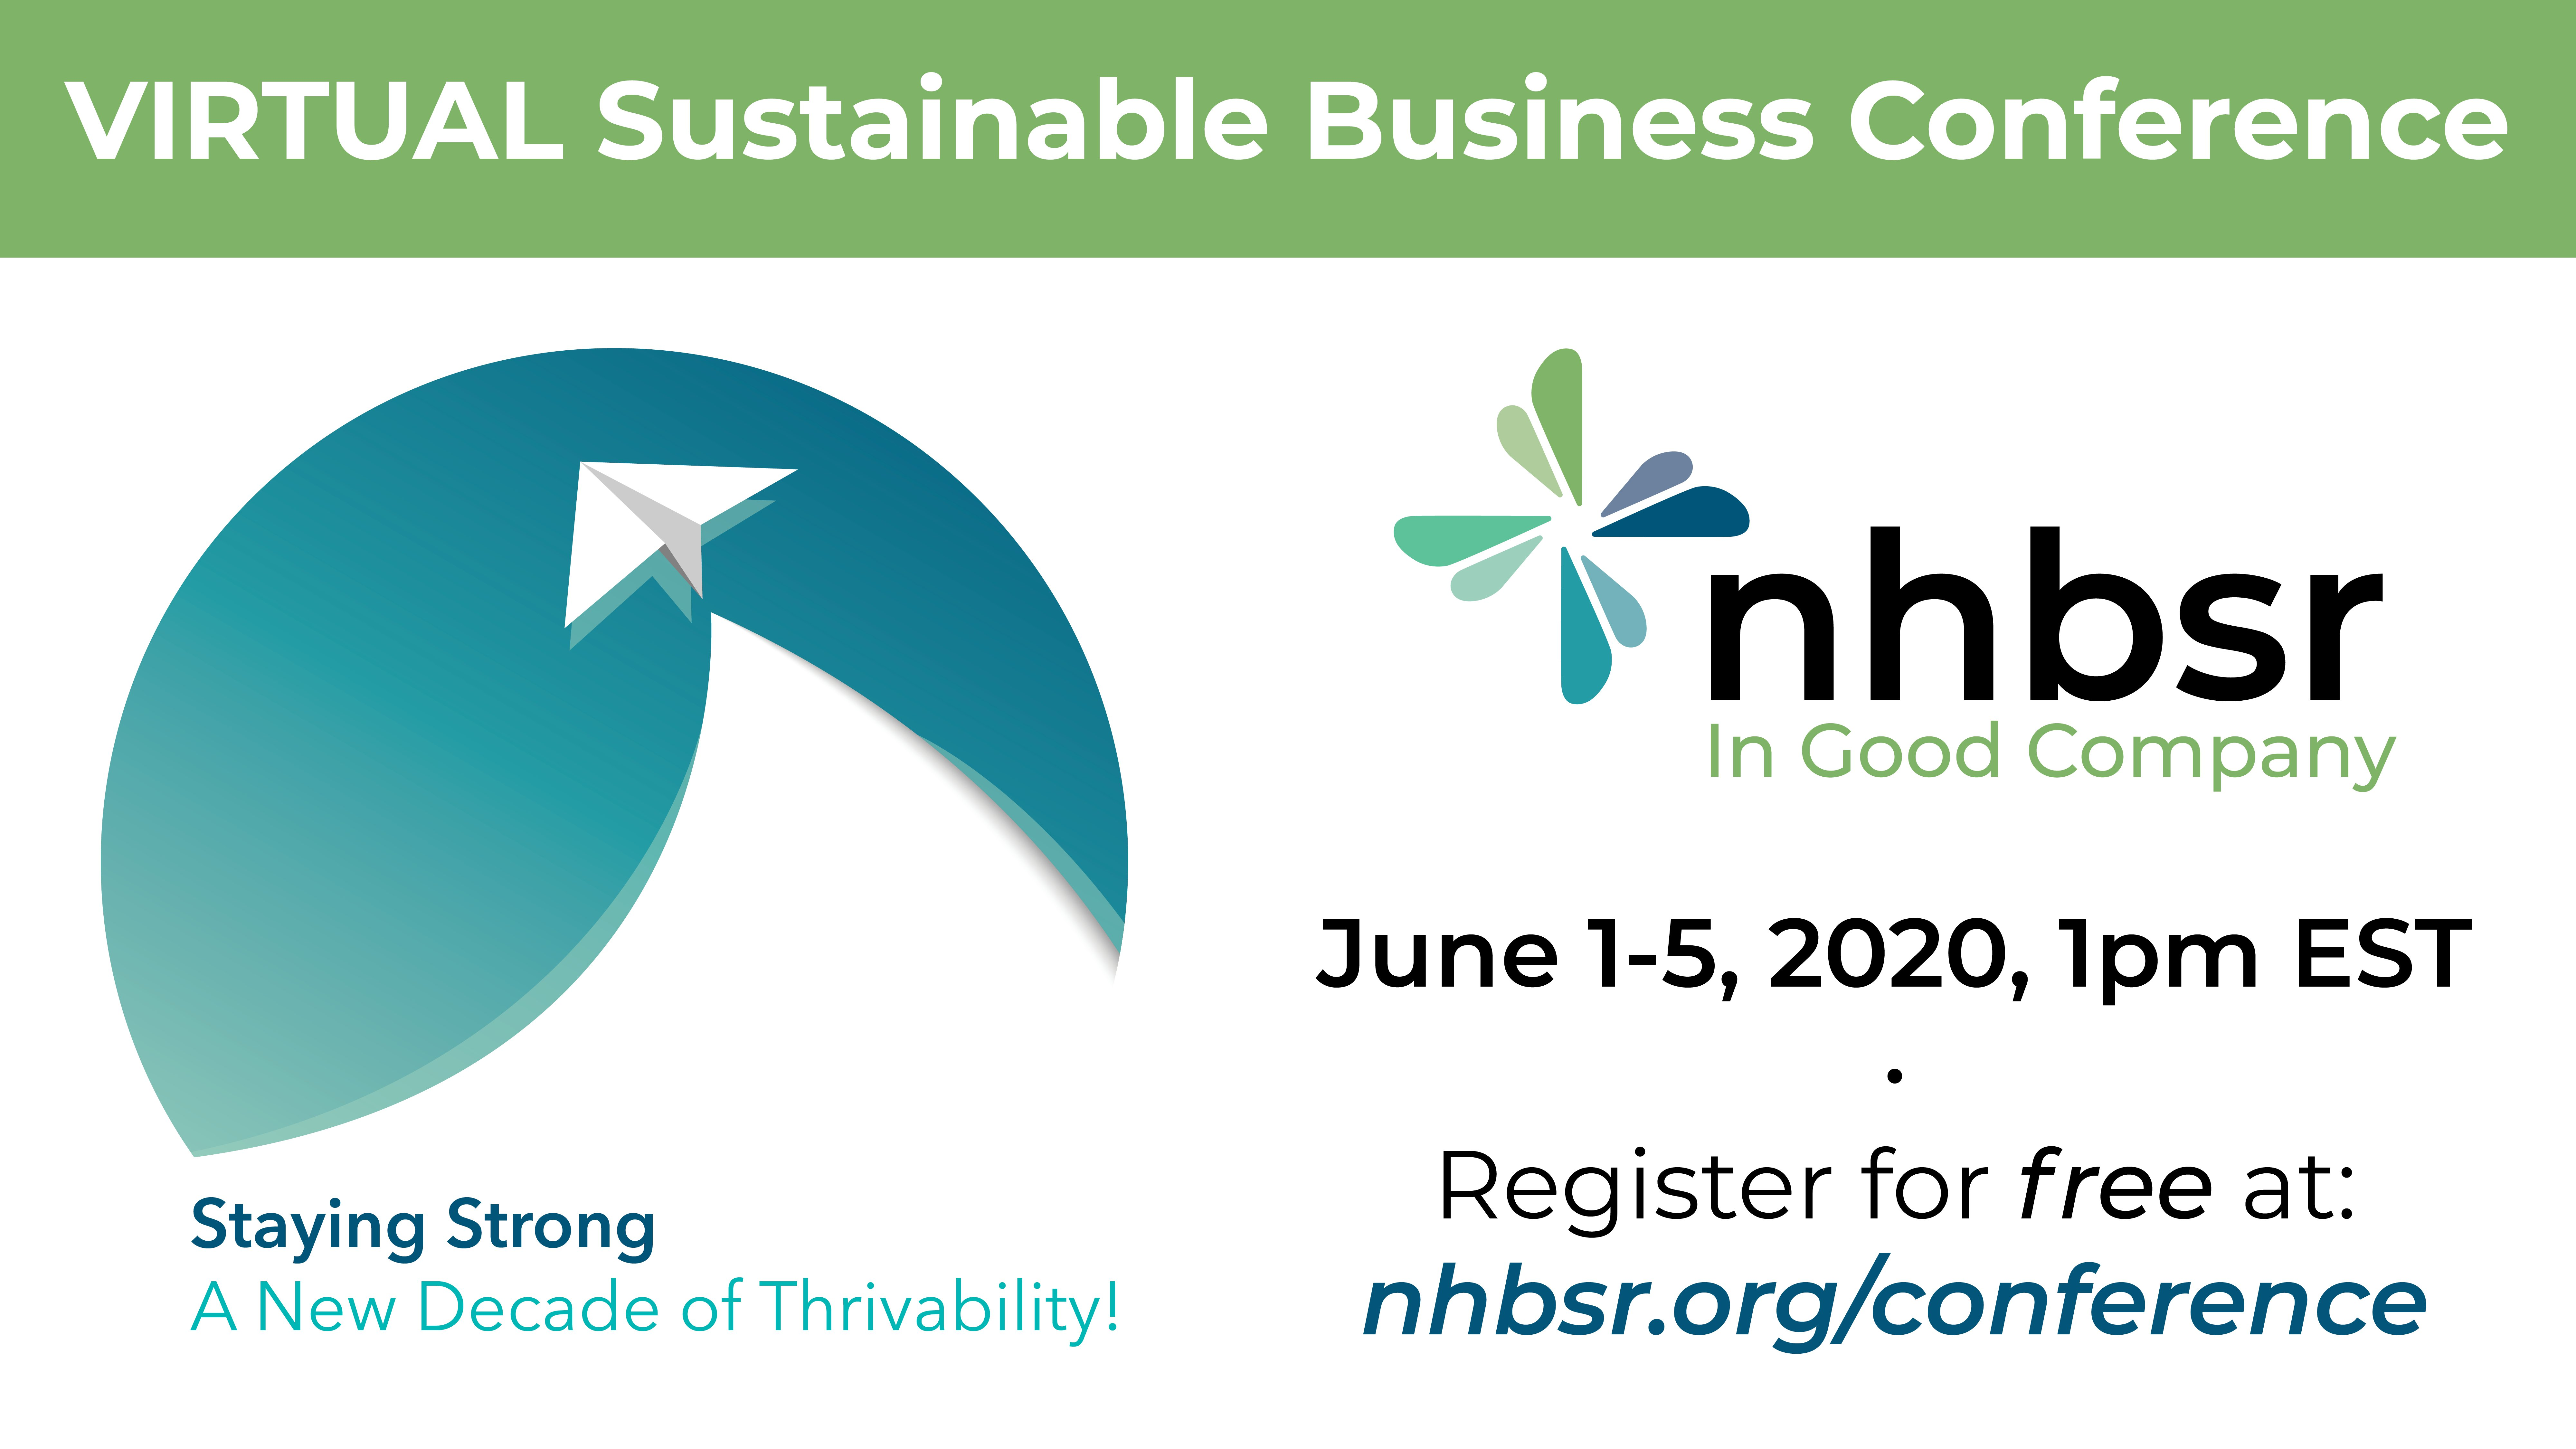 NHBSR Event Banner: Virtual Conference June 1-5 at 1pm EST